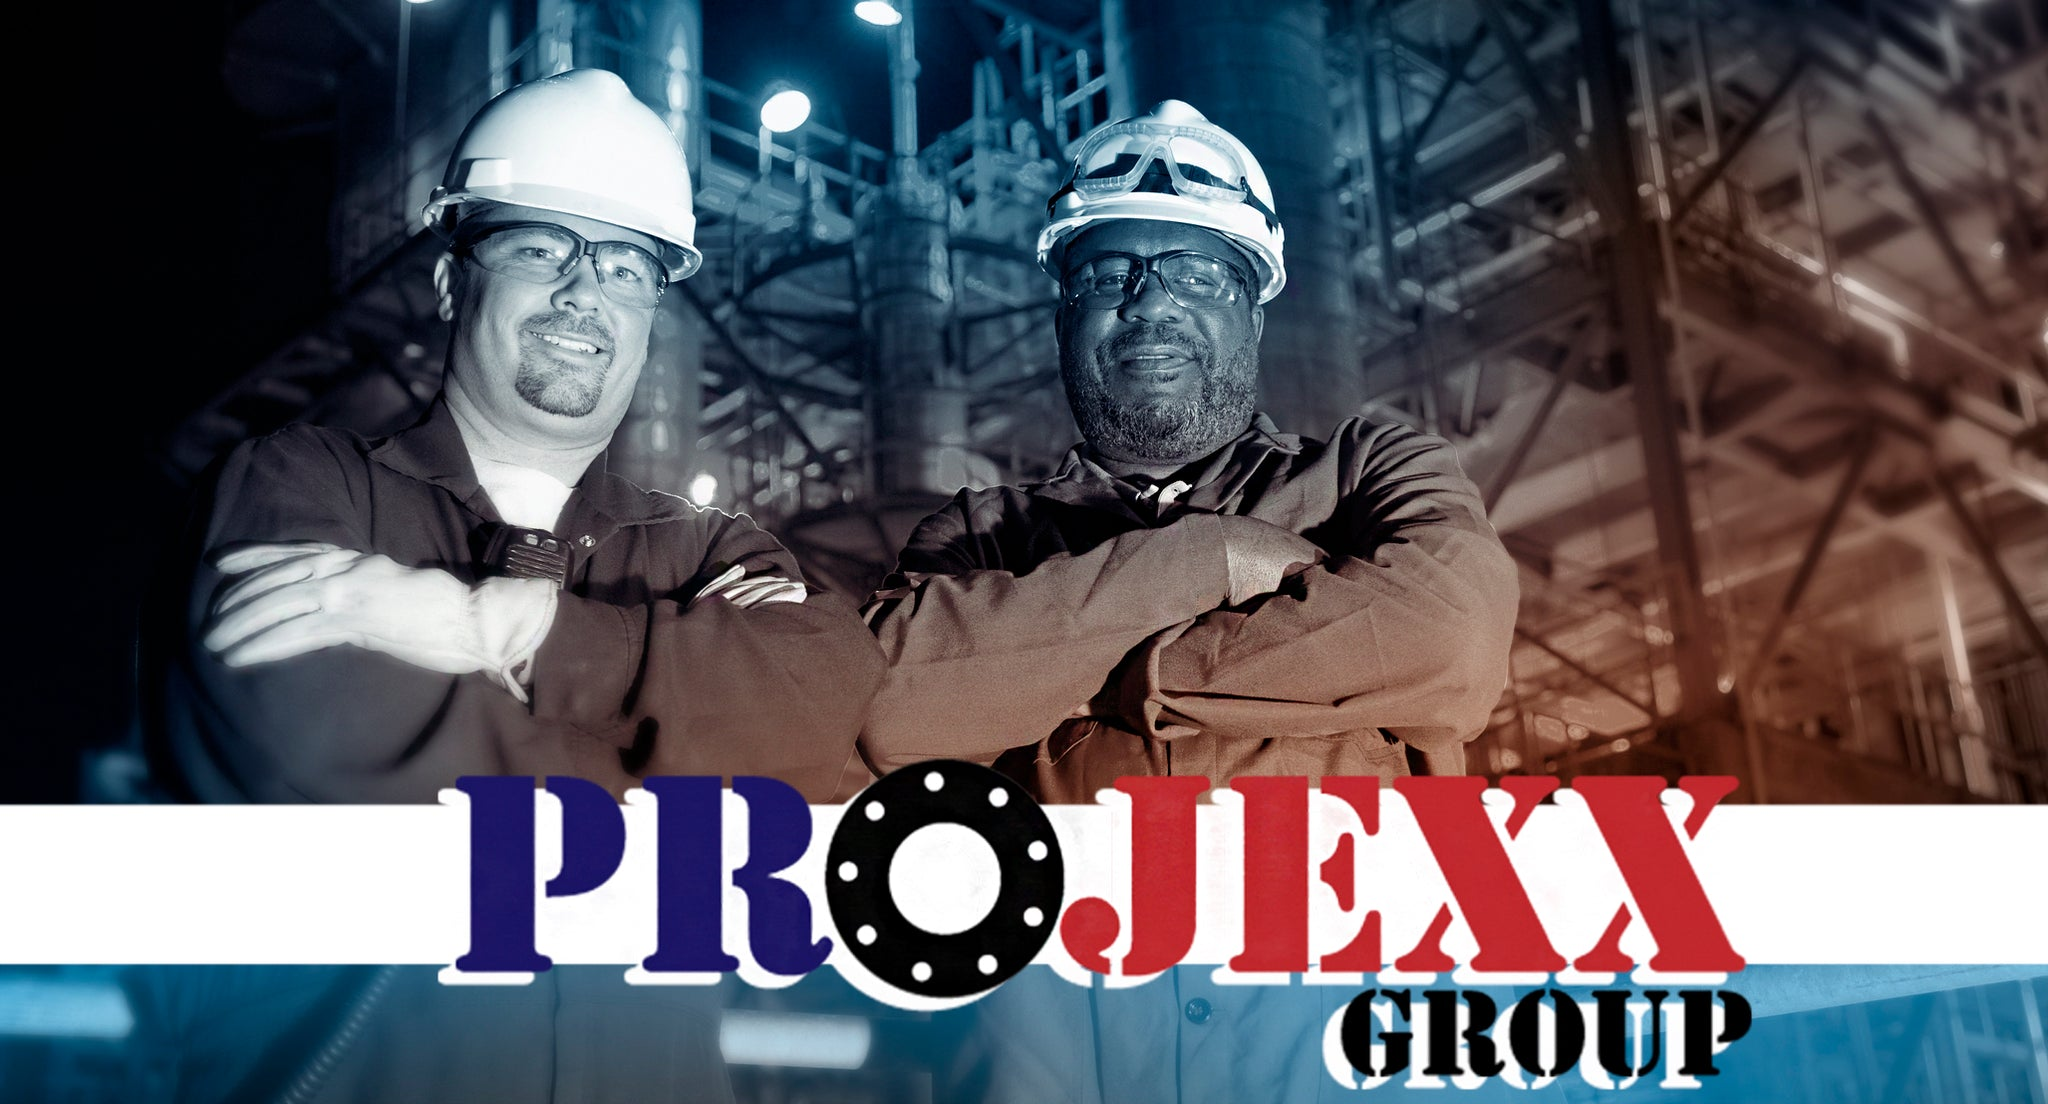 Projexx Group